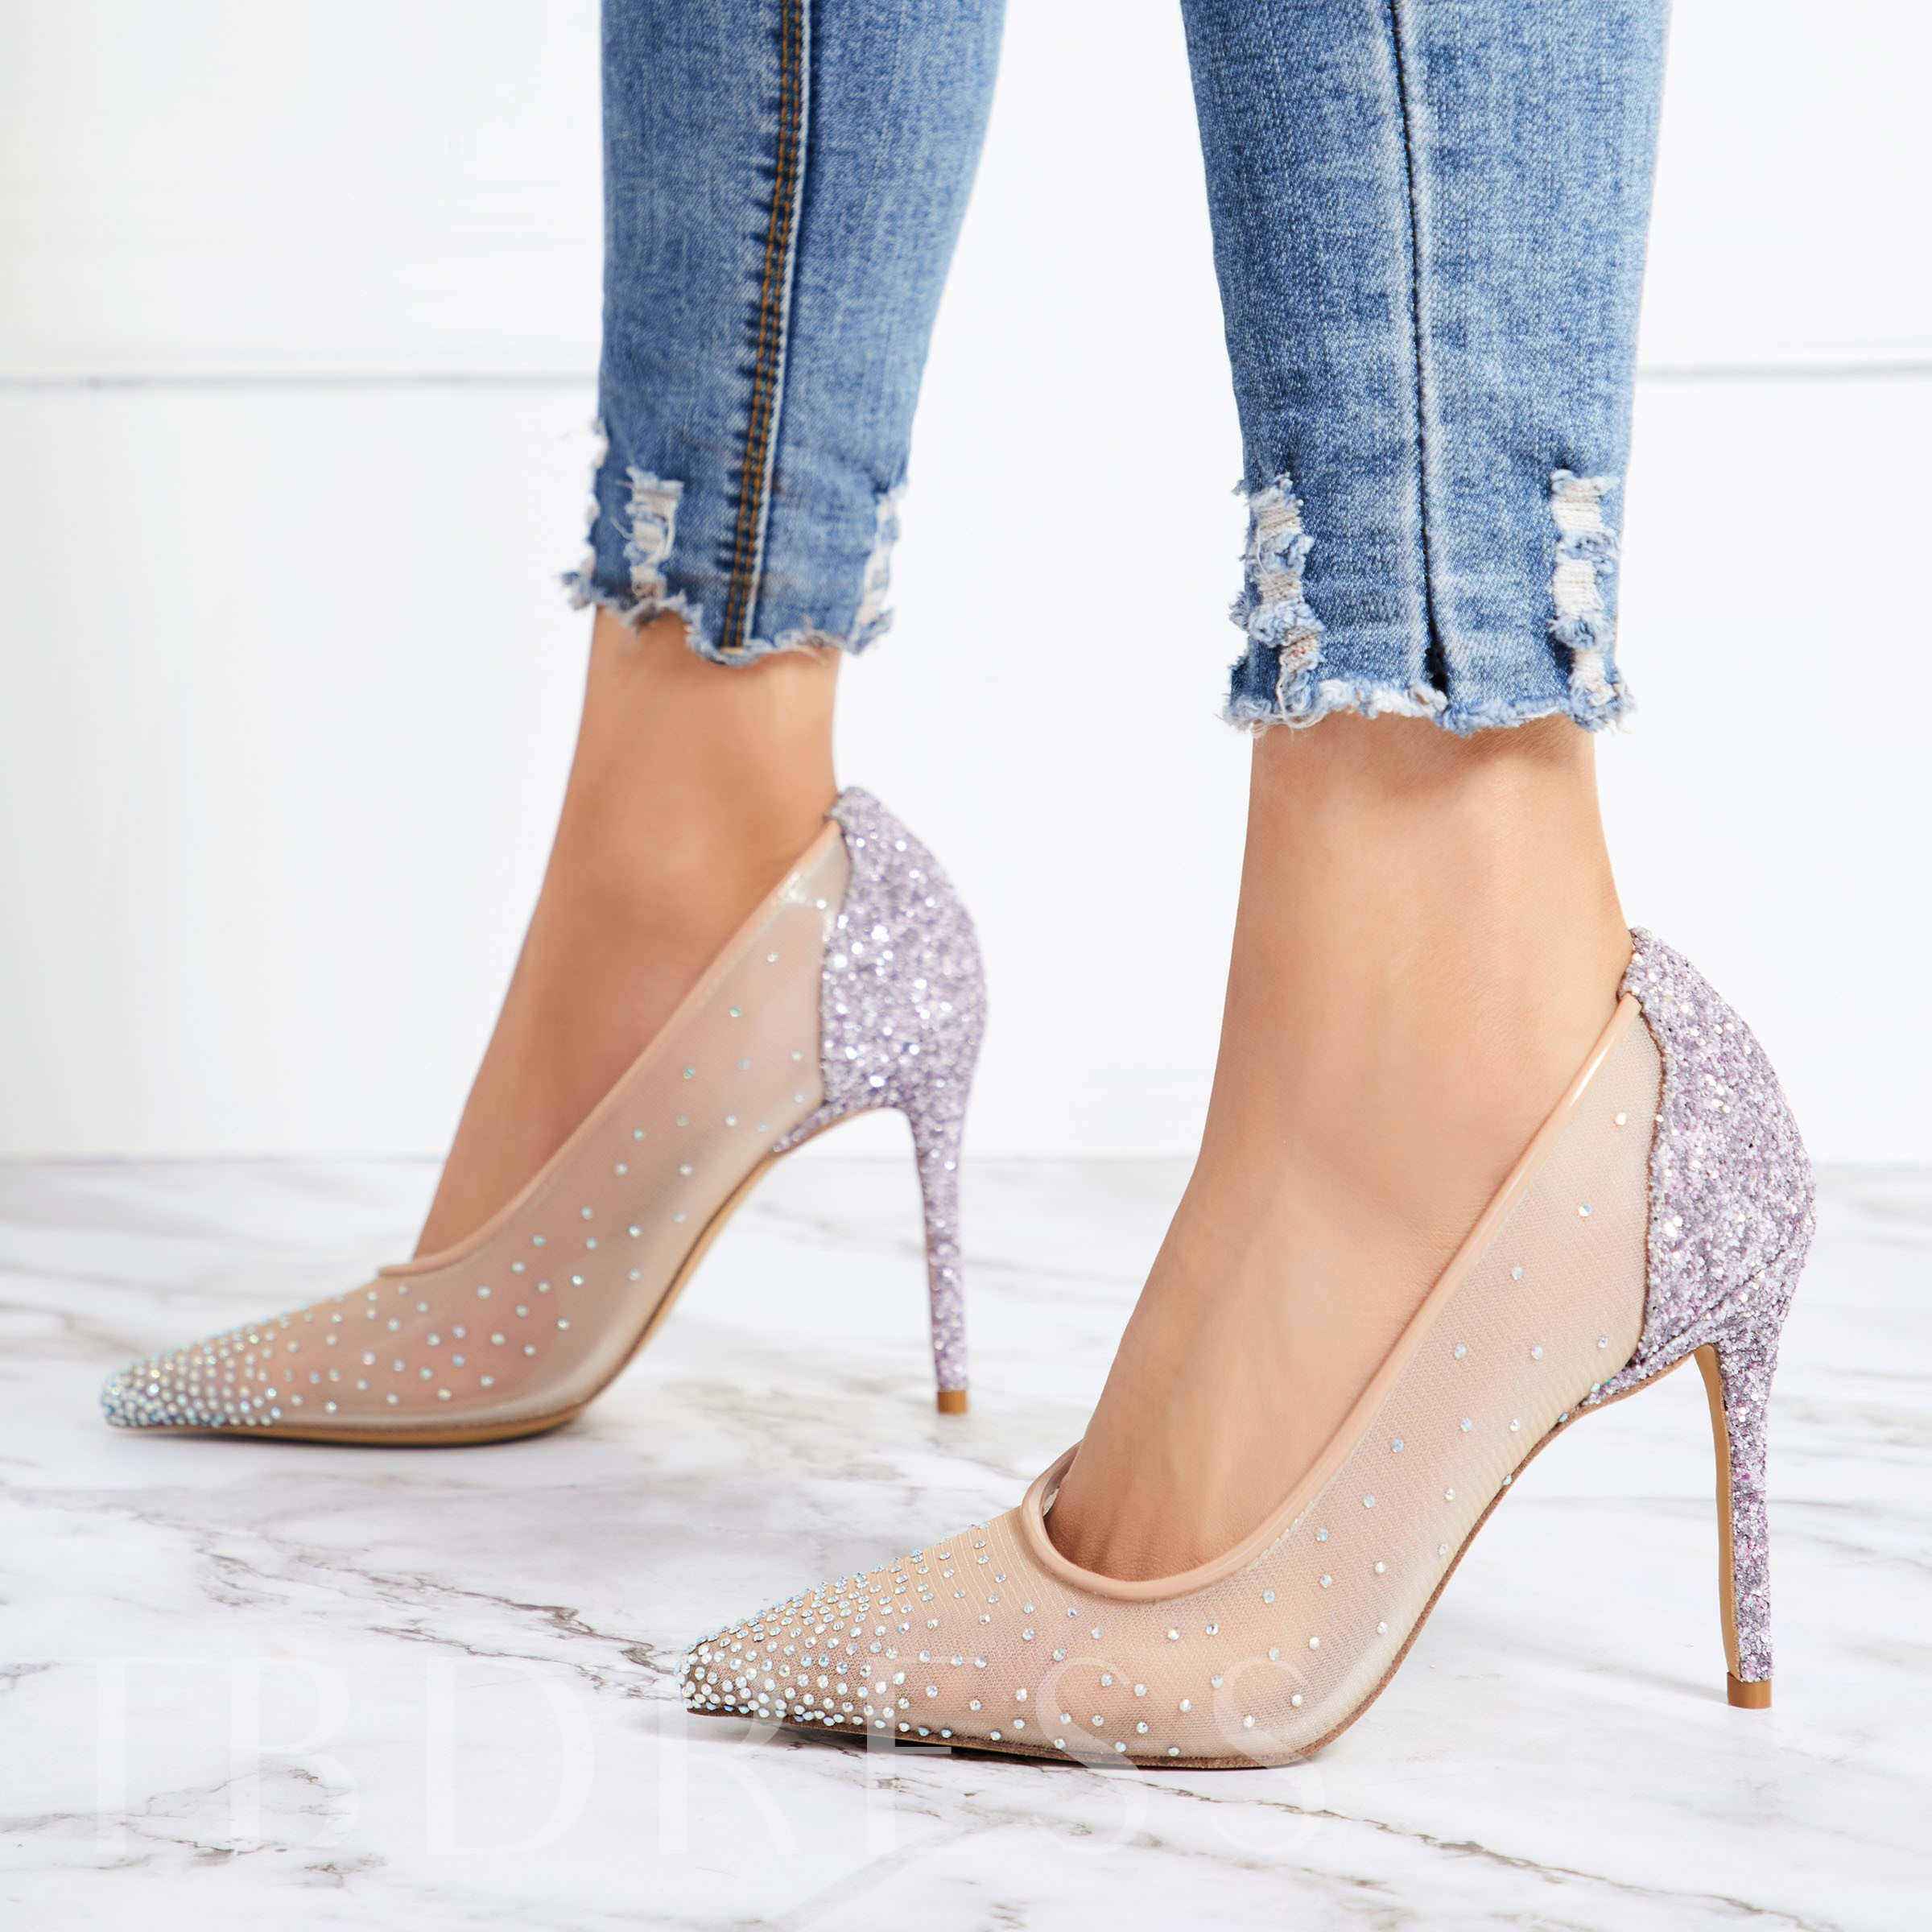 f462b262152f Mesh Stiletto Heel Pointed Toe Rhinestone Glitter Women s Prom Shoes. Sold  Out